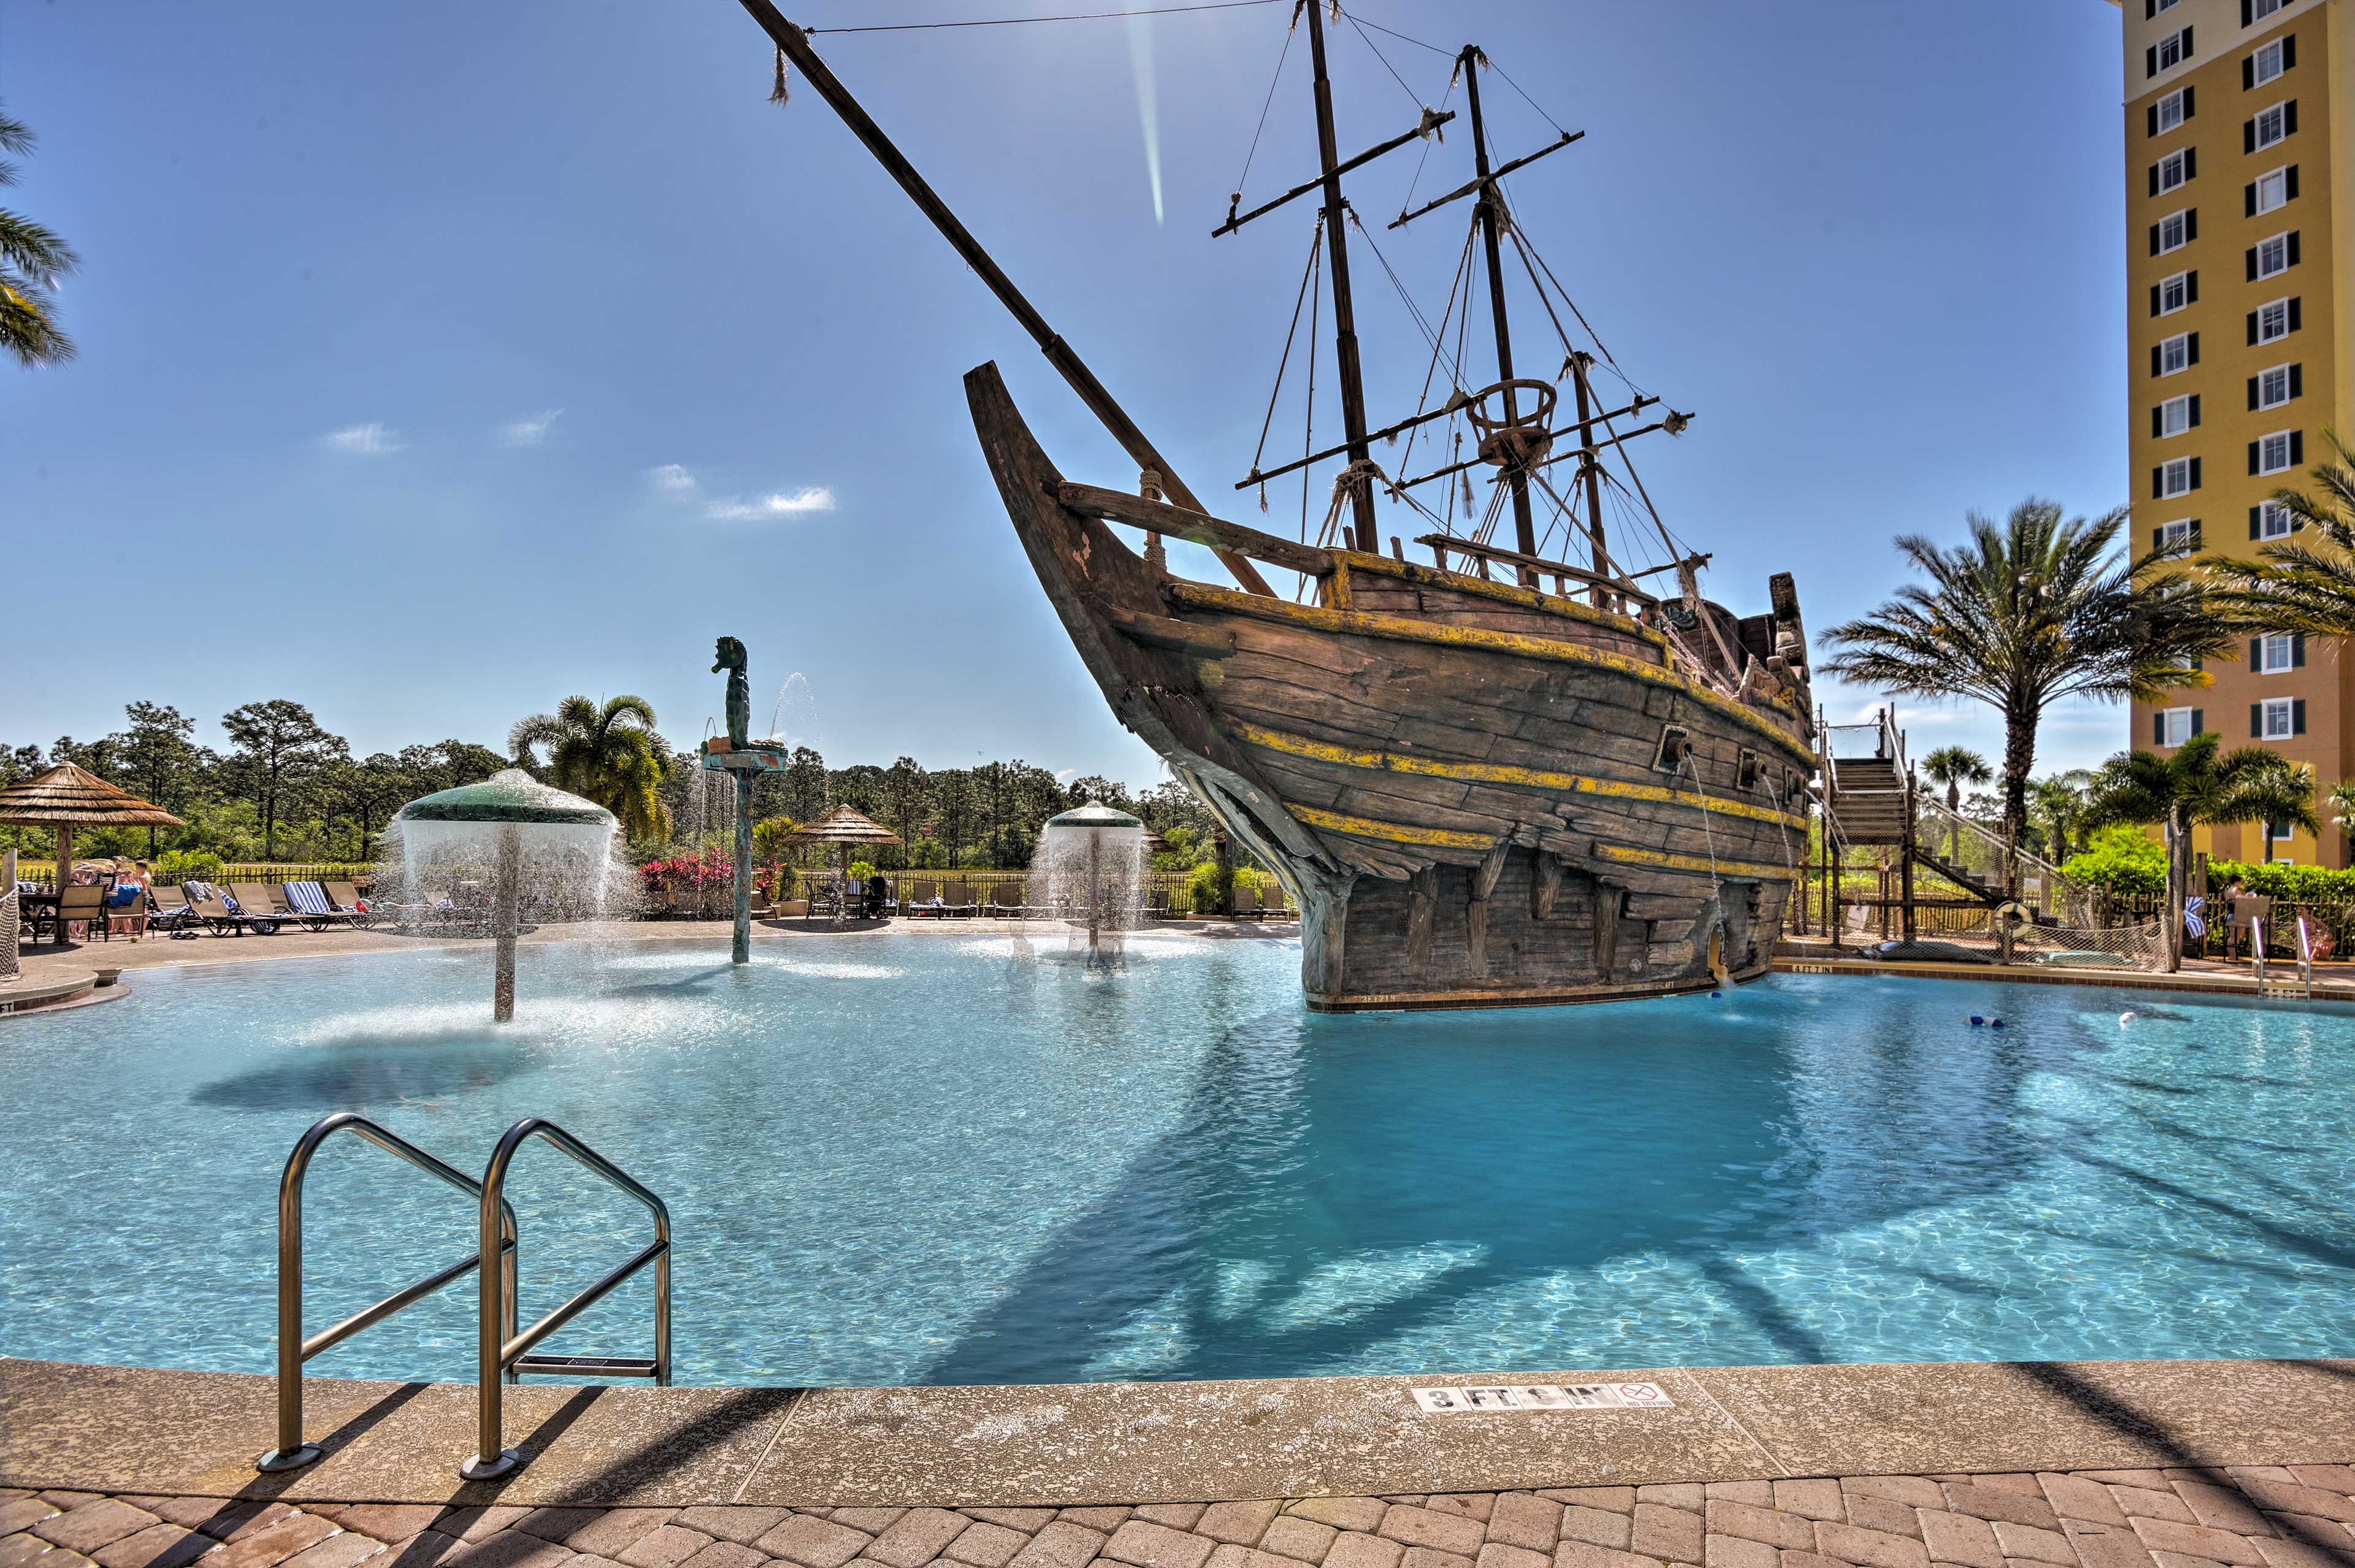 Make your Pirates of the Caribbean dreams come true at this community pool.